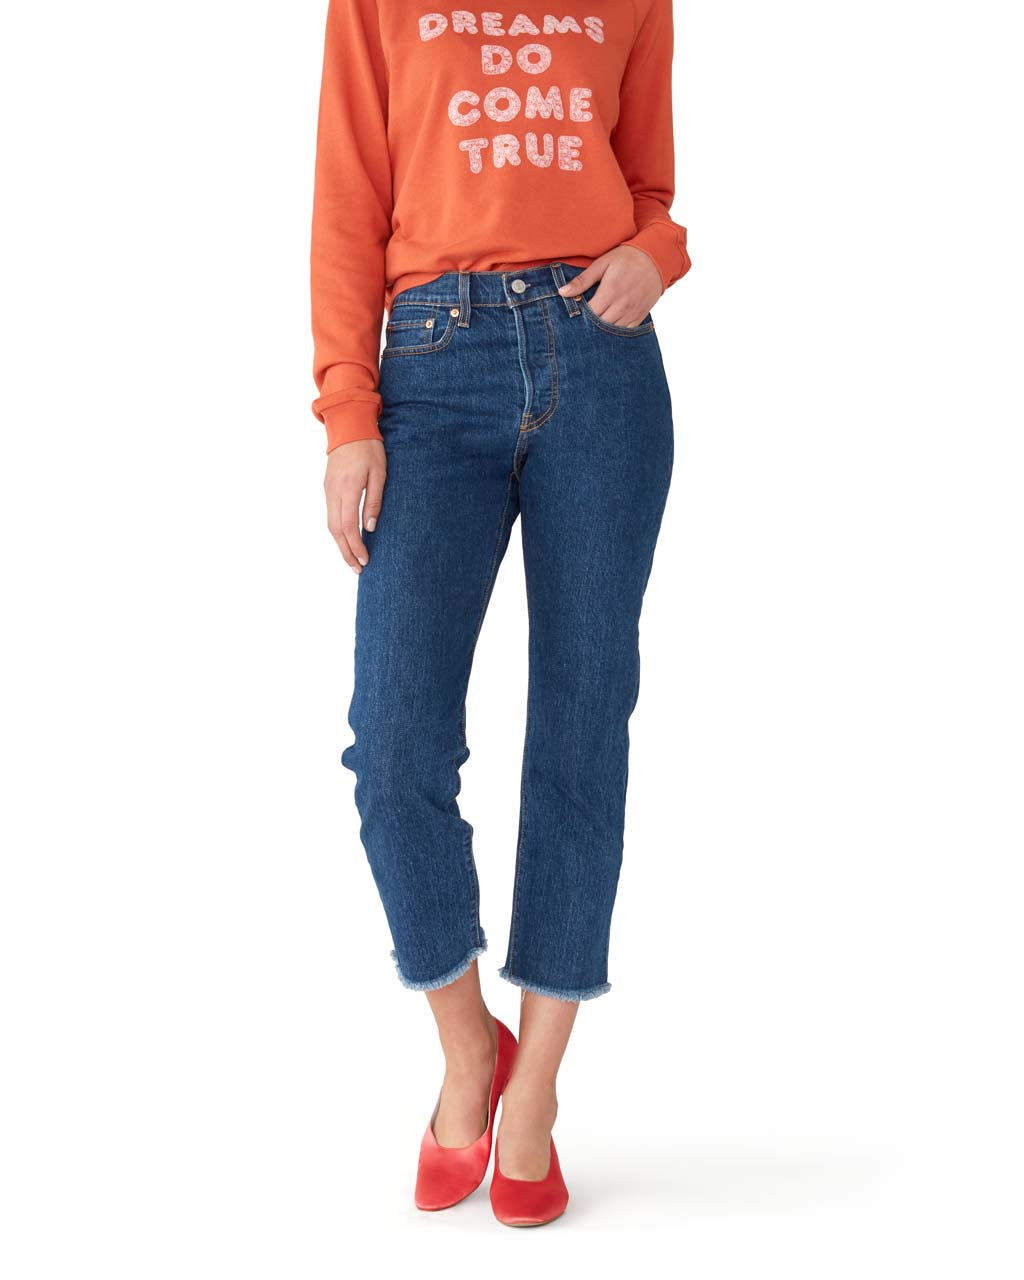 eeb8e9b8 Wedgie Straight Jeans - Below the Belt by levi's - jeans - ban.do